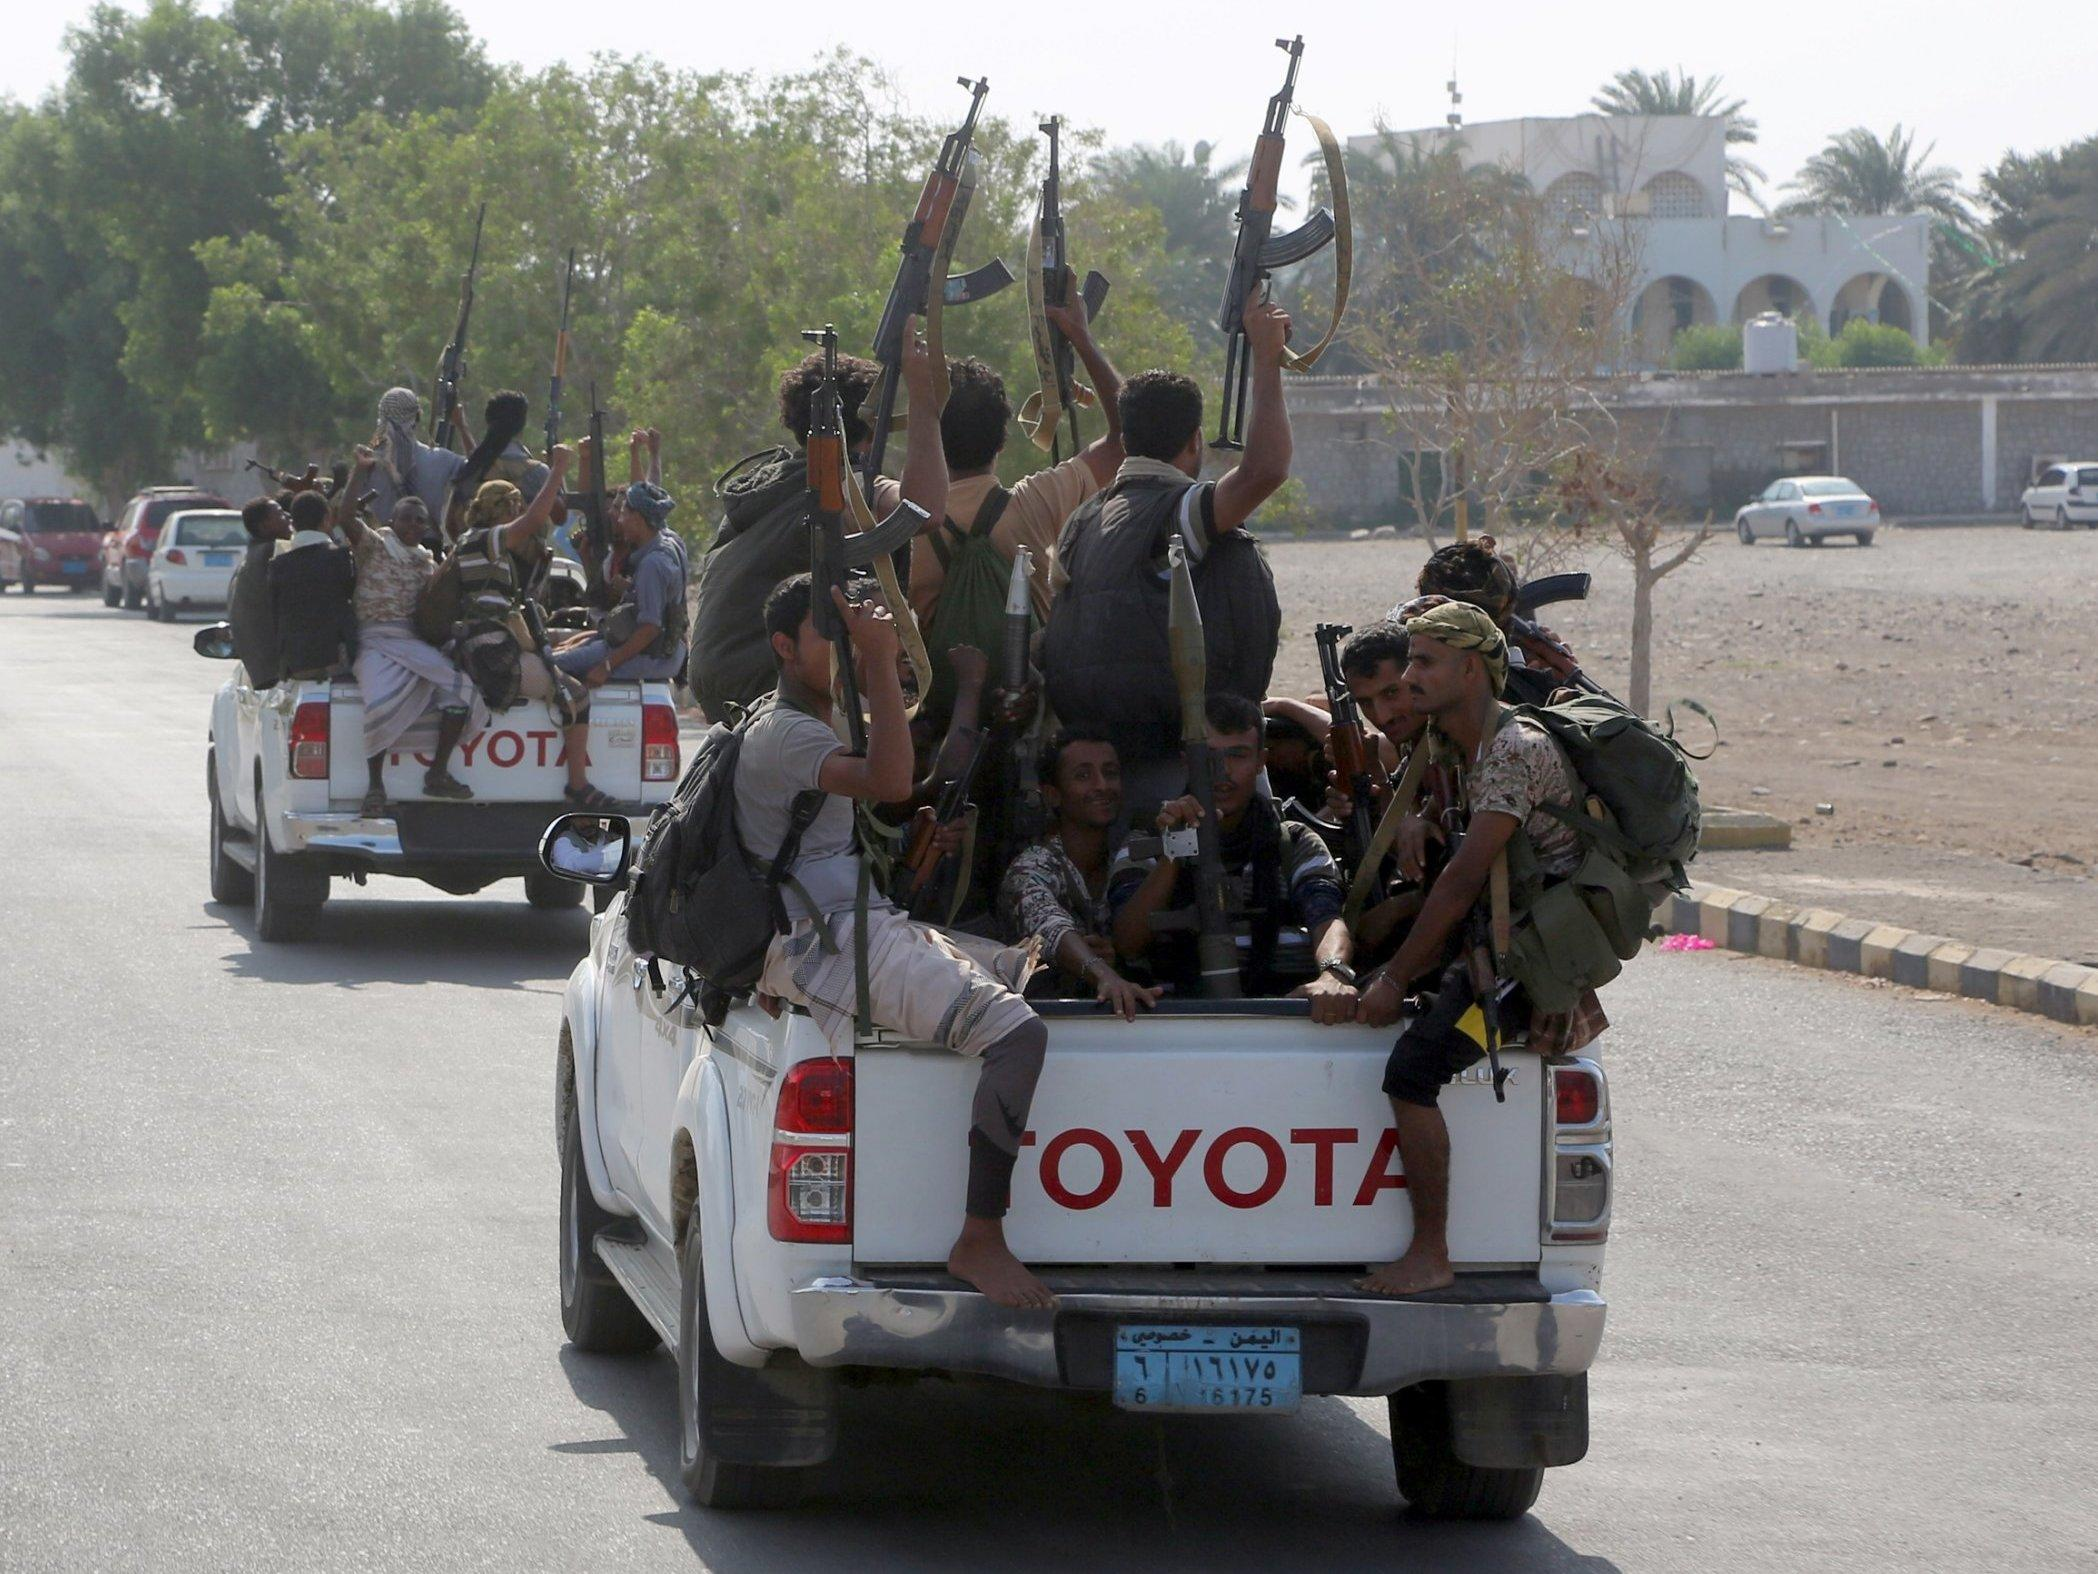 "The withdrawal announced by Houthi rebels from a key strategic port in Yemen has been disputed by government officials who suggest it could be a ""ploy"". Rebels forces said on Friday they were beginning a unilateral pullout from the key port of Hodeidah, a move observers hoped could save a fractured peace deal and bring an end to a civil war that has raged for four years.If the conflict ends this year, the UN estimates that more than 100,000 will have died in the fighting and 131,000 will have lost their lives indirectly though lack of food, health services and infrastructure.News agency AFP reported the United Nations had confirmed the withdrawal, while video footage obtained by the BBC showed Houthi forces setting off in trucks.Reports also said Houthi troops had been seen leaving Saleef, another key port, and said these movements were also observed by the UN. However Moammar al-Eryani, information minister for Yemen's government, warned rebels might try to ""mislead"" the world, and suggested they may just be reshuffling personnel.""We welcome any measures towards the implementation of the Sweden agreement on redeployment in ports in Hodeidah province and warn of attempts by the militia to mislead the international community and the [UN] Security Council before the next meeting,"" Mr Eryani tweeted.Over the past year Hodeidah has become the front line of the war between Iran-backed rebels and the Gulf-backed Yemeni government.The fighting has prevented millions of people on the brink of famine from receiving vital resources, as the bulk of food and humanitarian aid to the war-torn country comes through the port.A deal brokered by the UN in Sweden in December stipulated a retraction of all forces from three key Red Sea ports of Hodeidah, Salif and Ras Isa as the first step to a longer comprehensive peace agreement.General Michael Lollesgaard, the head of the UN redeployment committee, said if a withdrawal has begun, it should be completed by Tuesday. A UN observer mission led by him will monitor the movement of forces.The war, sparked by Houthi rebels frustrated by corruption, unemployment, food insecurity and terror attacks under President Abdrabbuh Mansour Hadi's leadership, has been named the worst humanitarian crisis in the world."